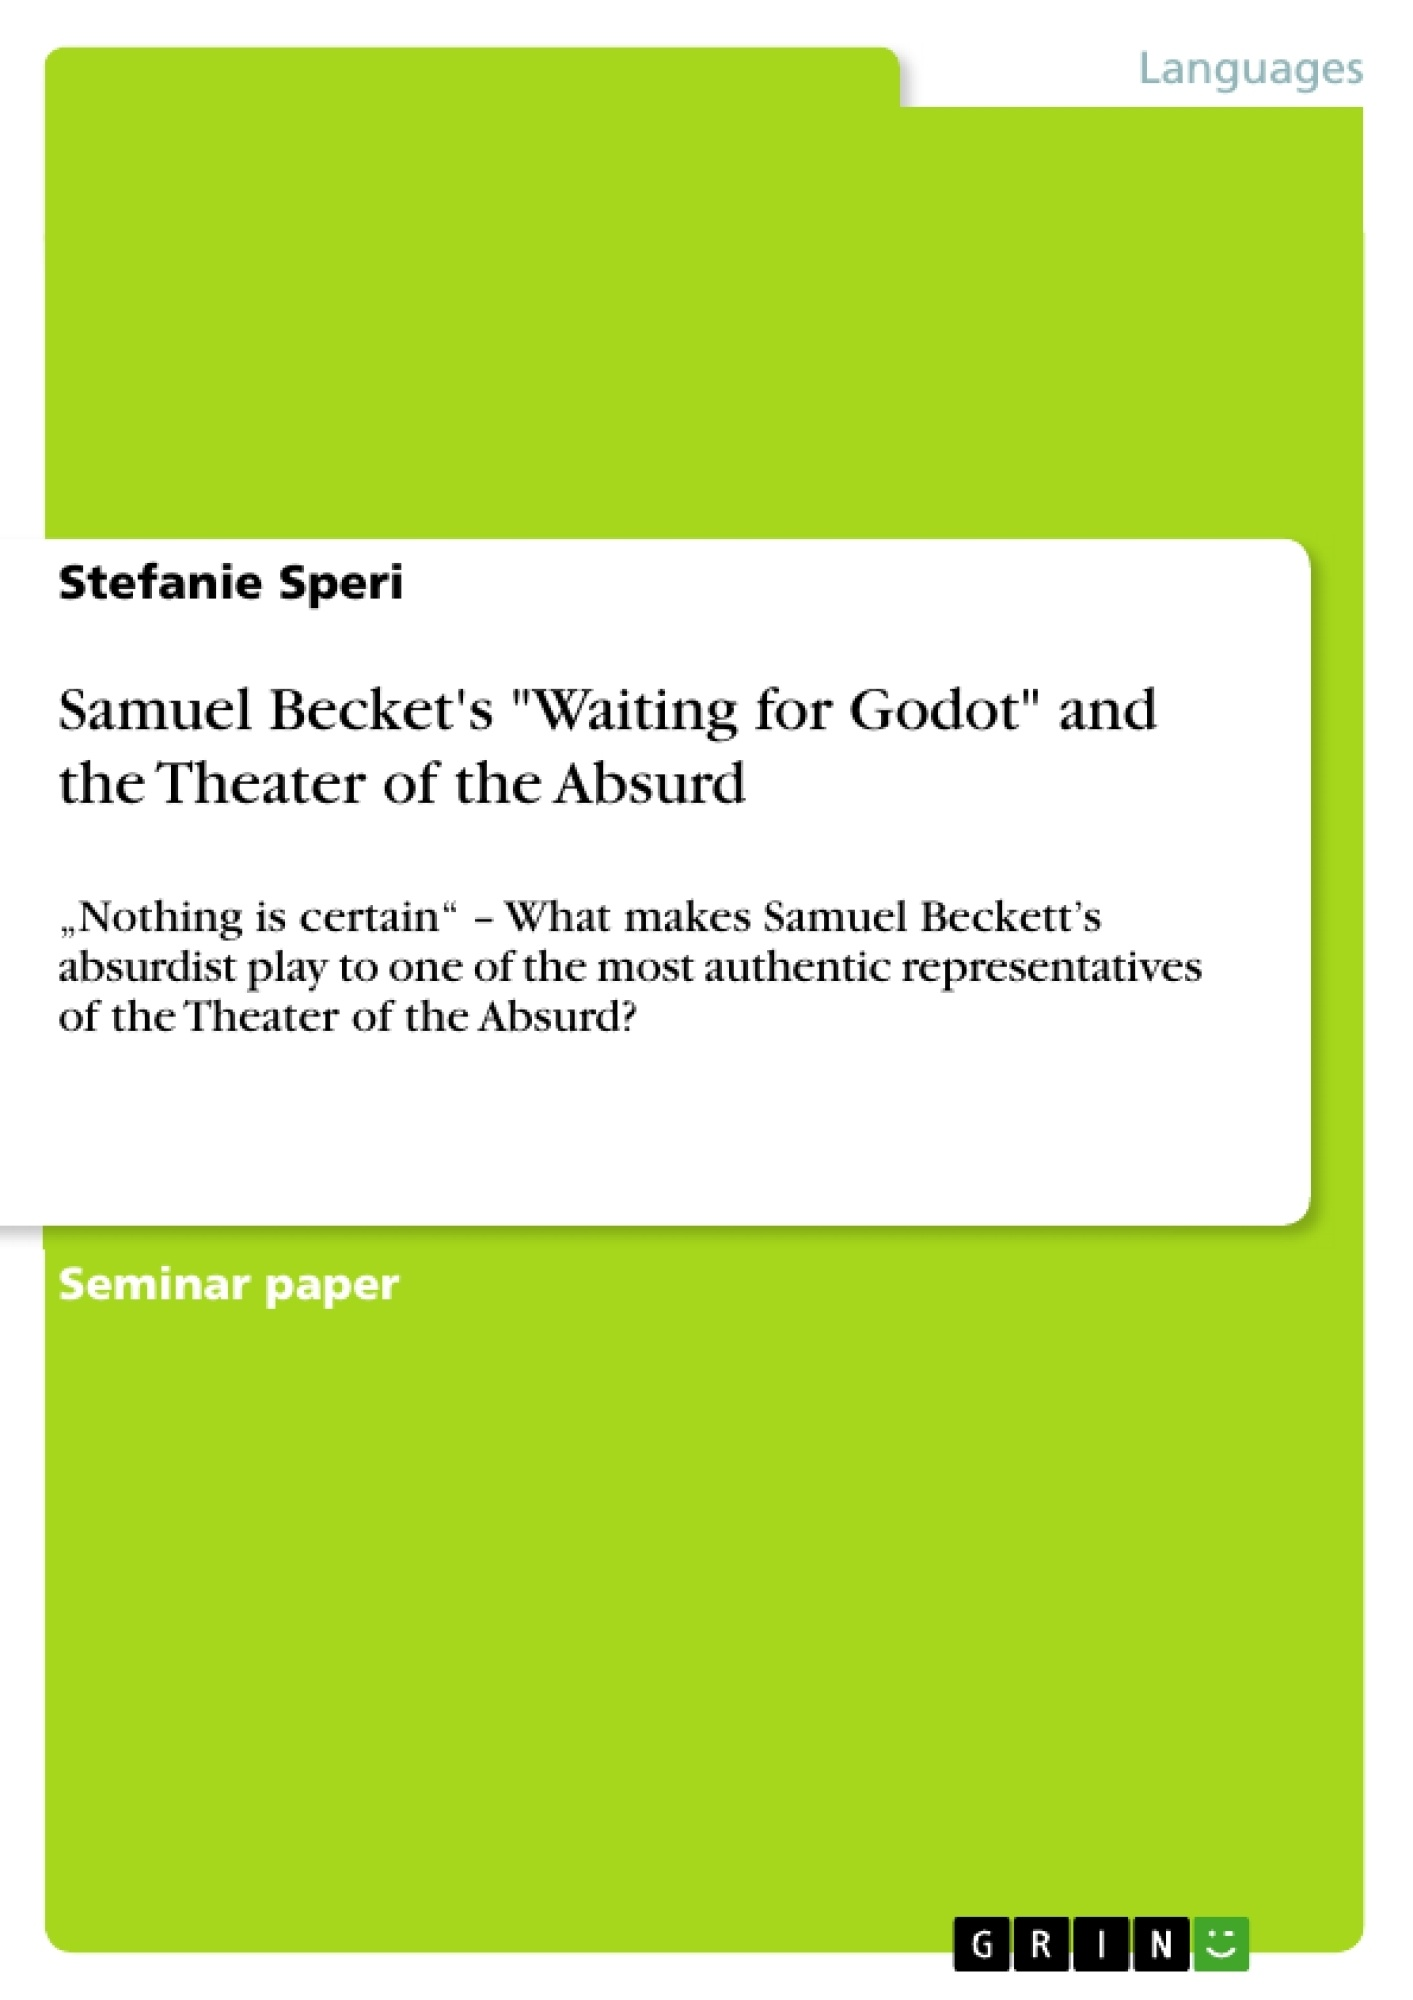 Samuel Beckets Waiting For Godot And The Theater Of The Absurd  Upload Your Own Papers Earn Money And Win An Iphone X Research Paper Essay also Literature Review Service Uk  Help Writing Essay Paper